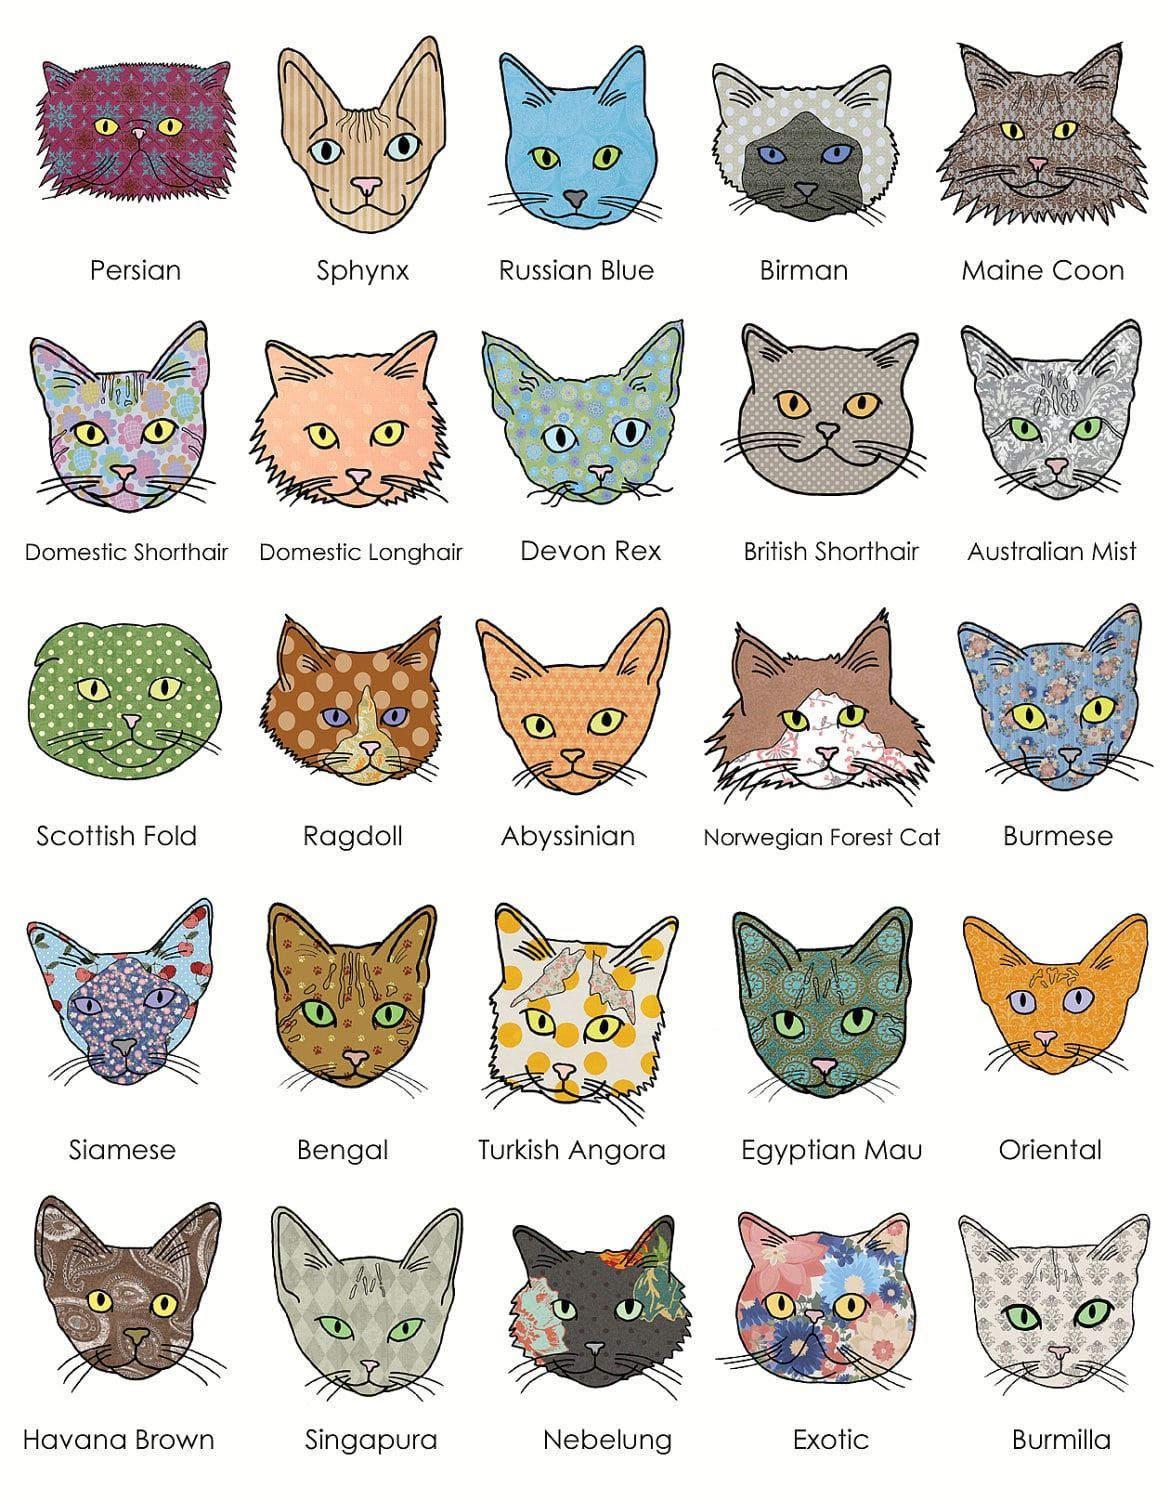 The Essential A Z Cat Breed Guide On Cat Tree Catsbreedsthatdontshed With Images Cat Breeds Chart Cats And Kittens Cat Breeds